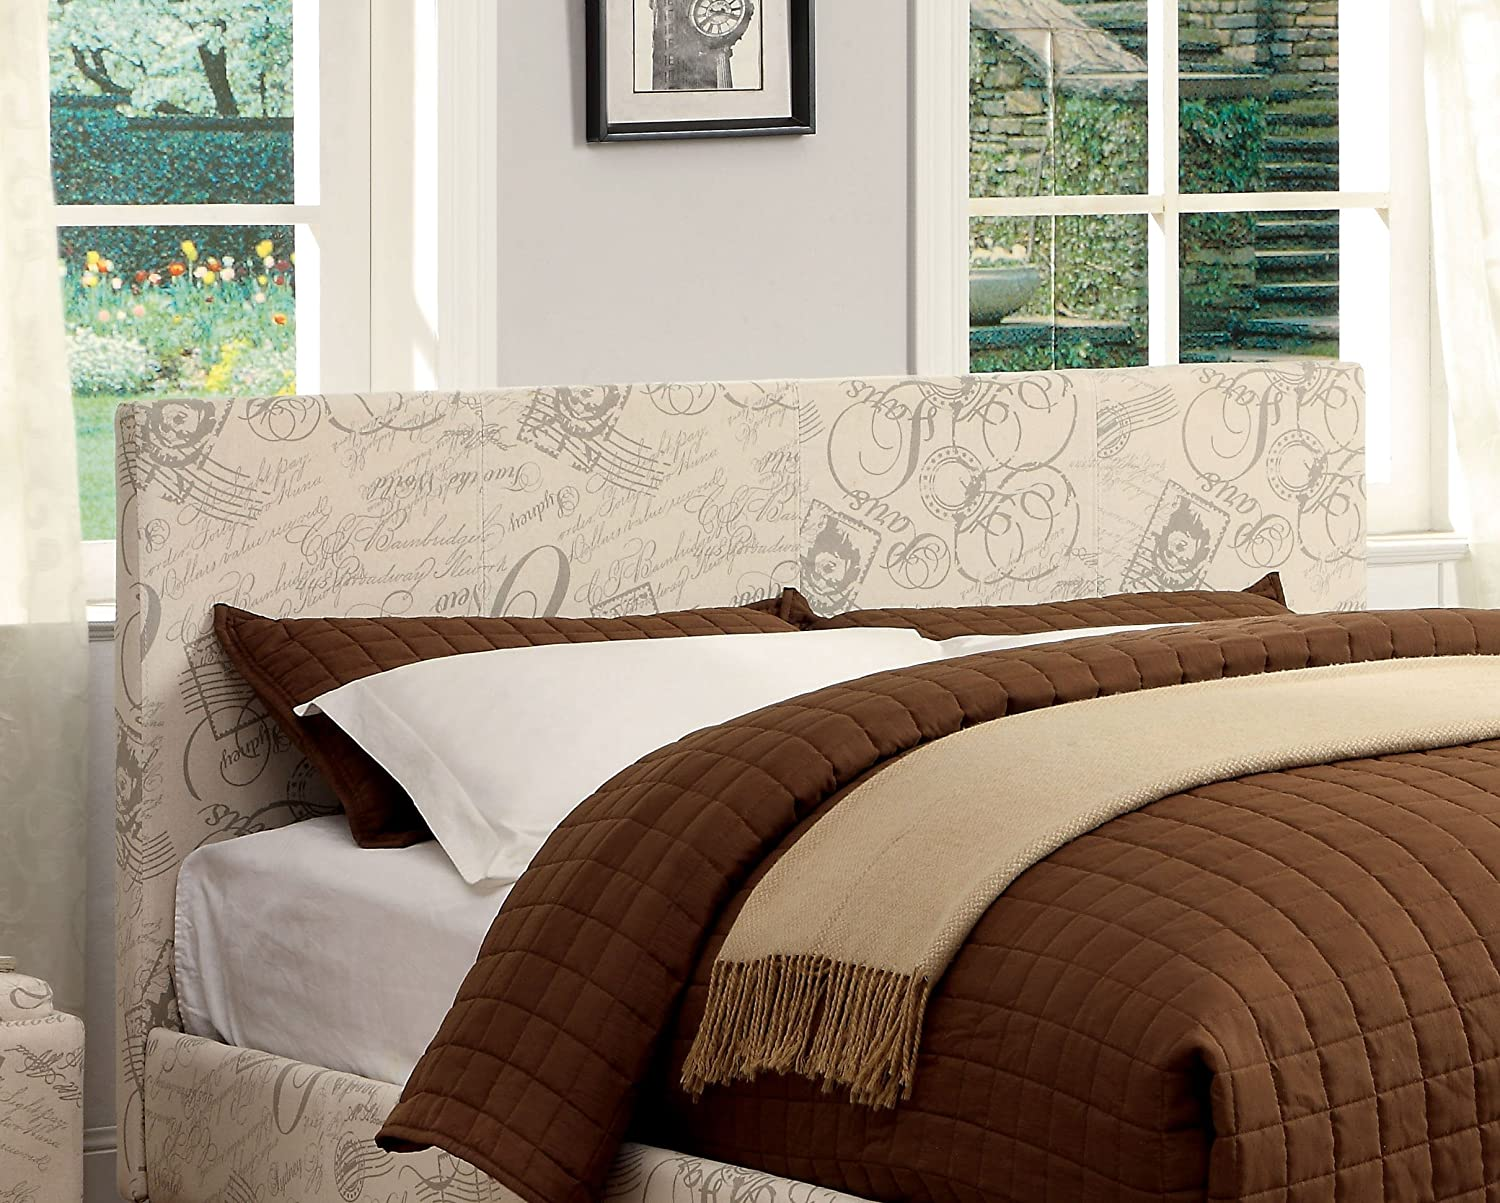 Furniture of America Malena Leatherette Headboard, Full-to-Queen, Ivory Script